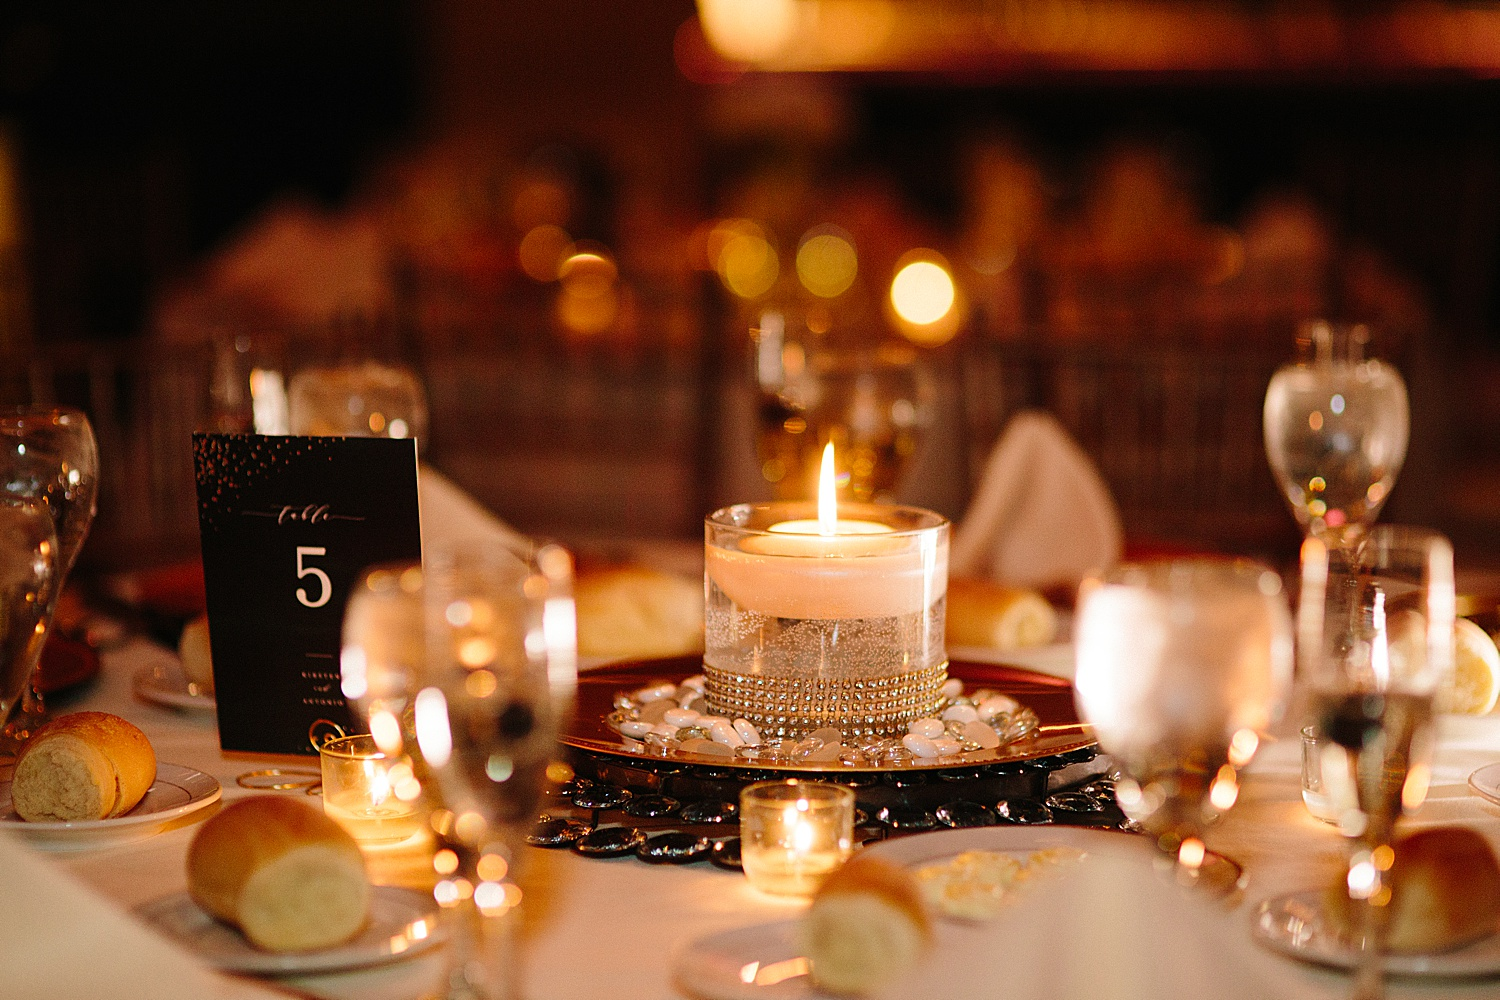 kirstentony_uniontrust_finleycatering_christchurch_philadelphia_wedding_image_0729.jpg